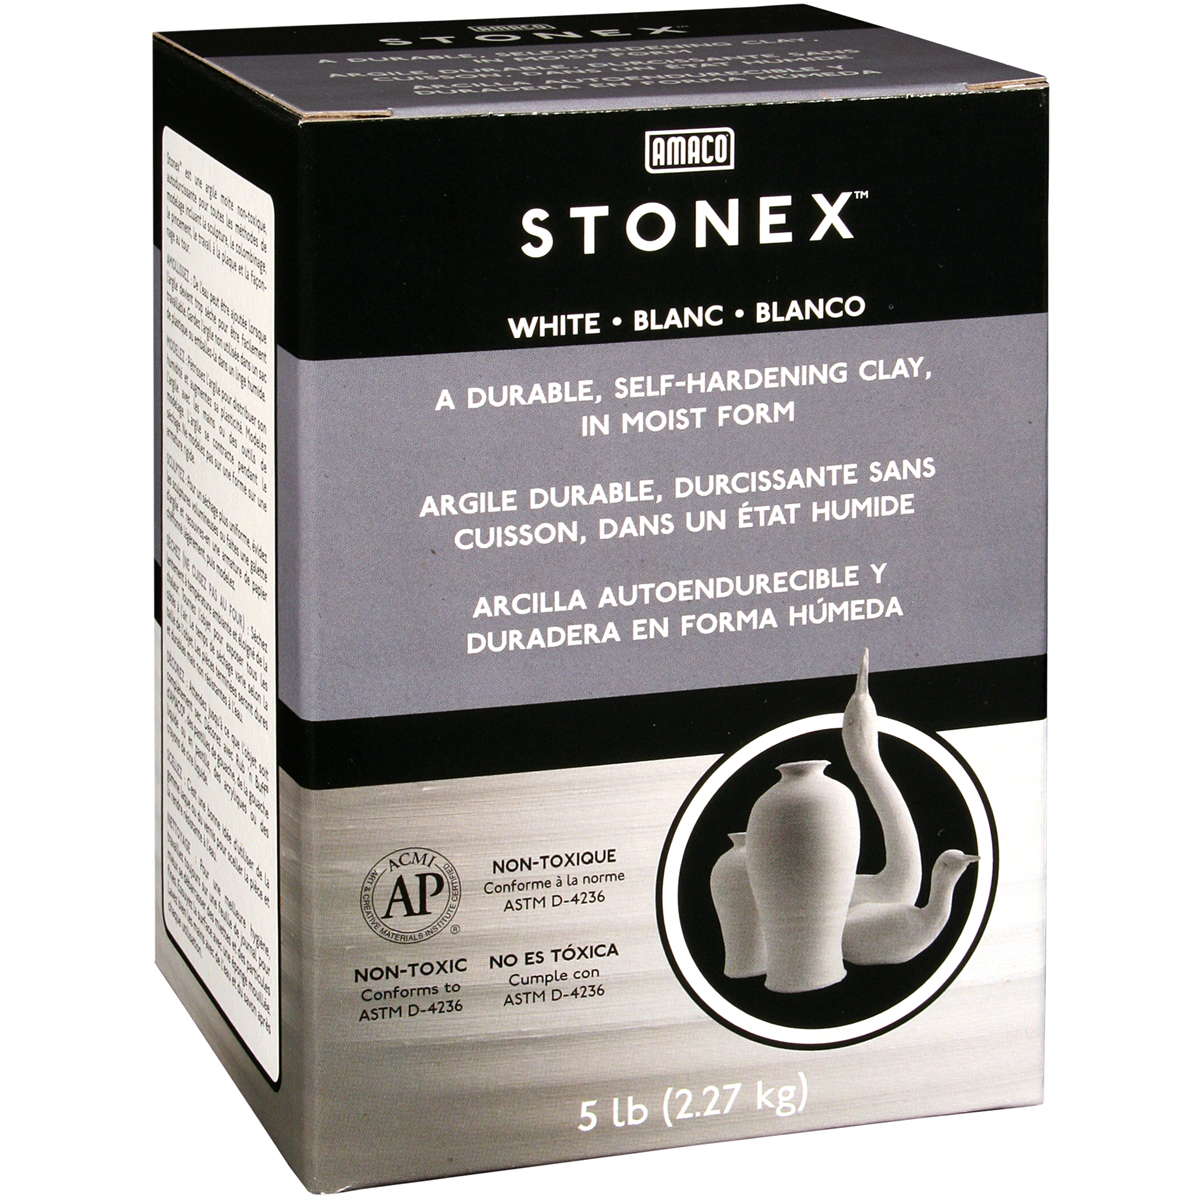 Stonex Self-Hardening Clay 5lb-White